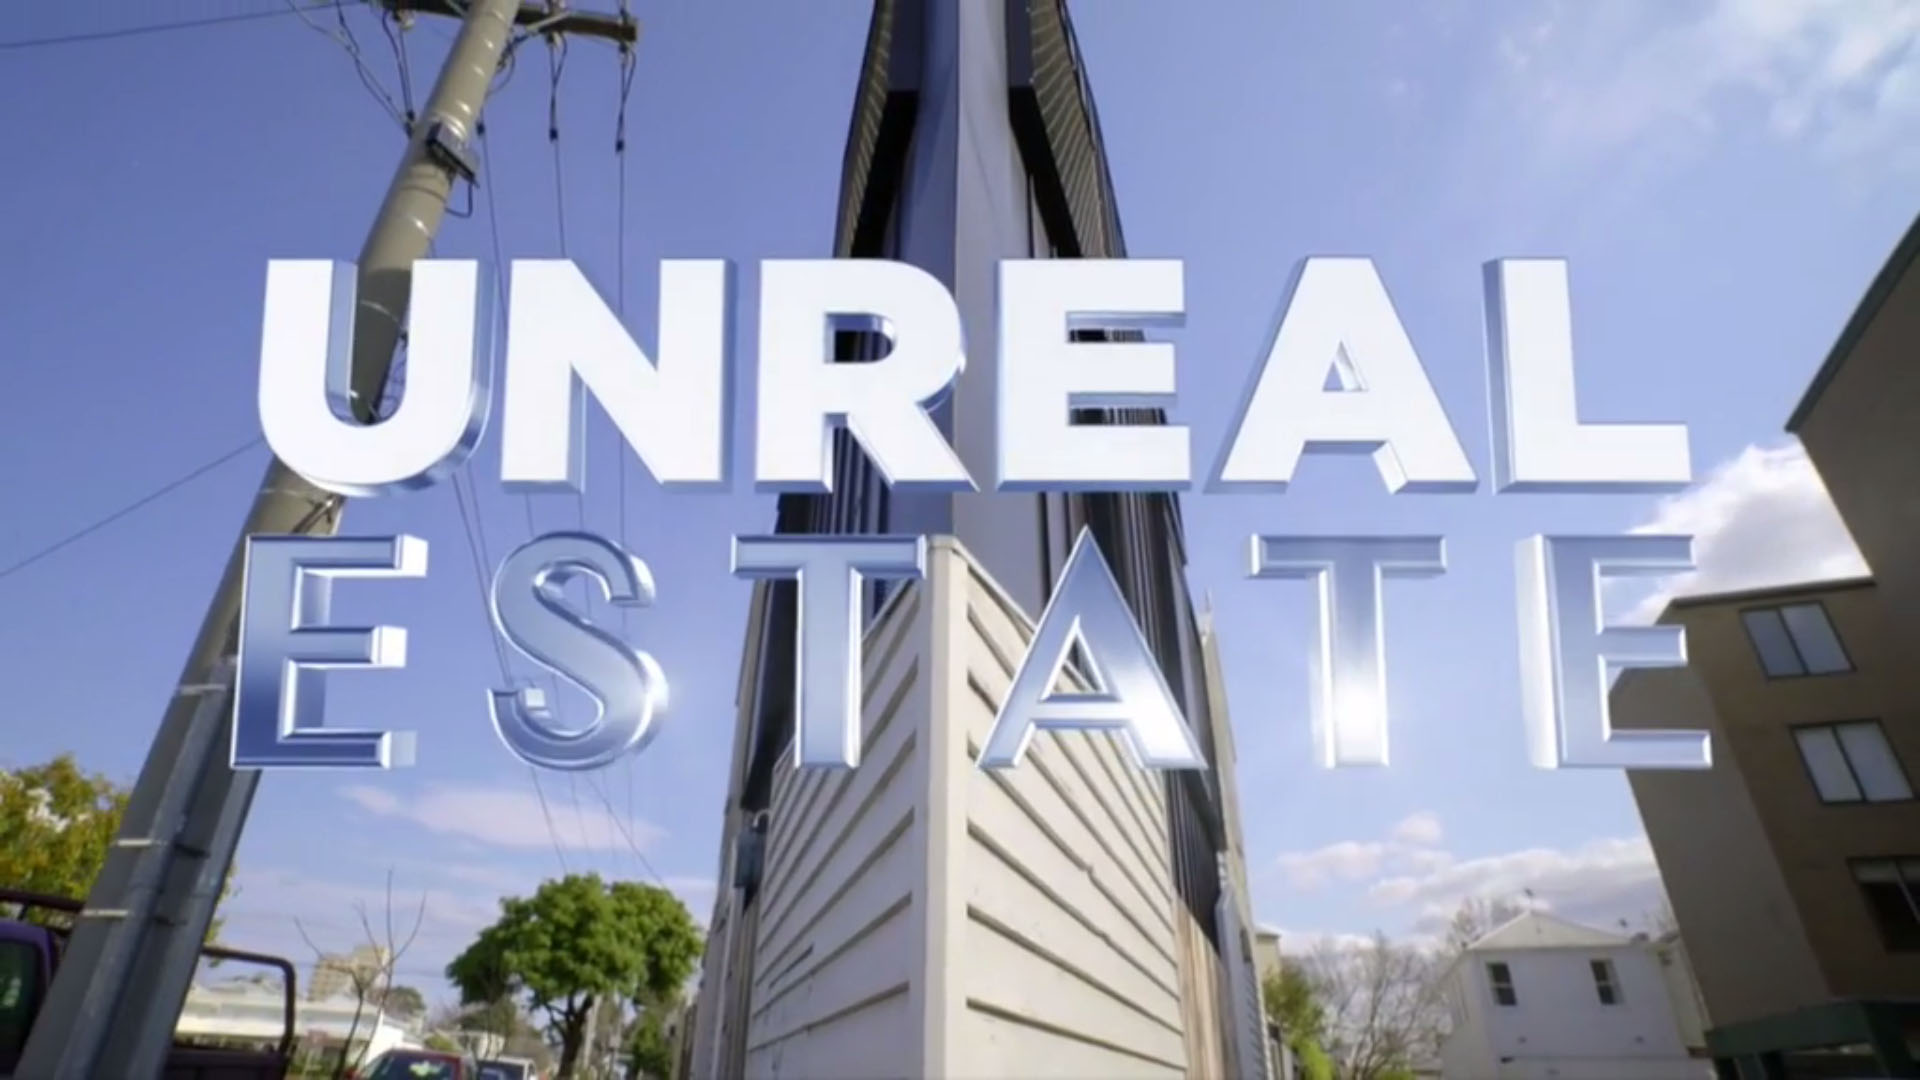 still from Unreal Estate | Channel 9